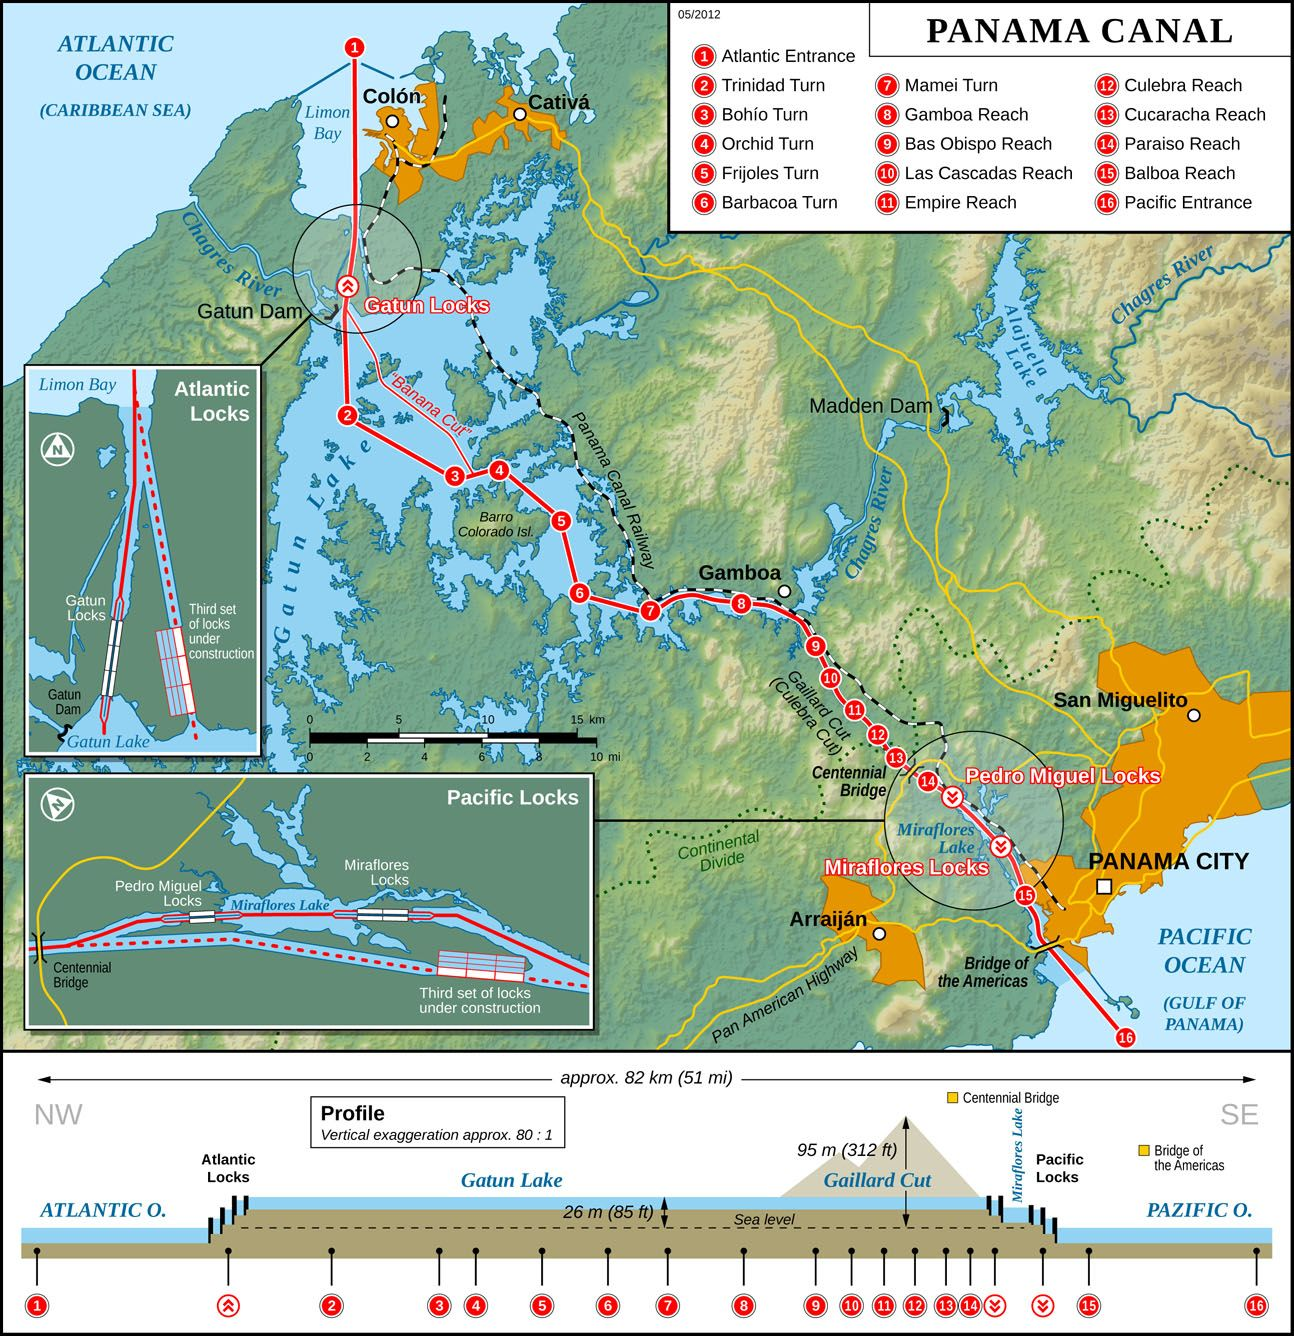 Panama Canal Map Places South America Pinterest Panama - Panama central america map